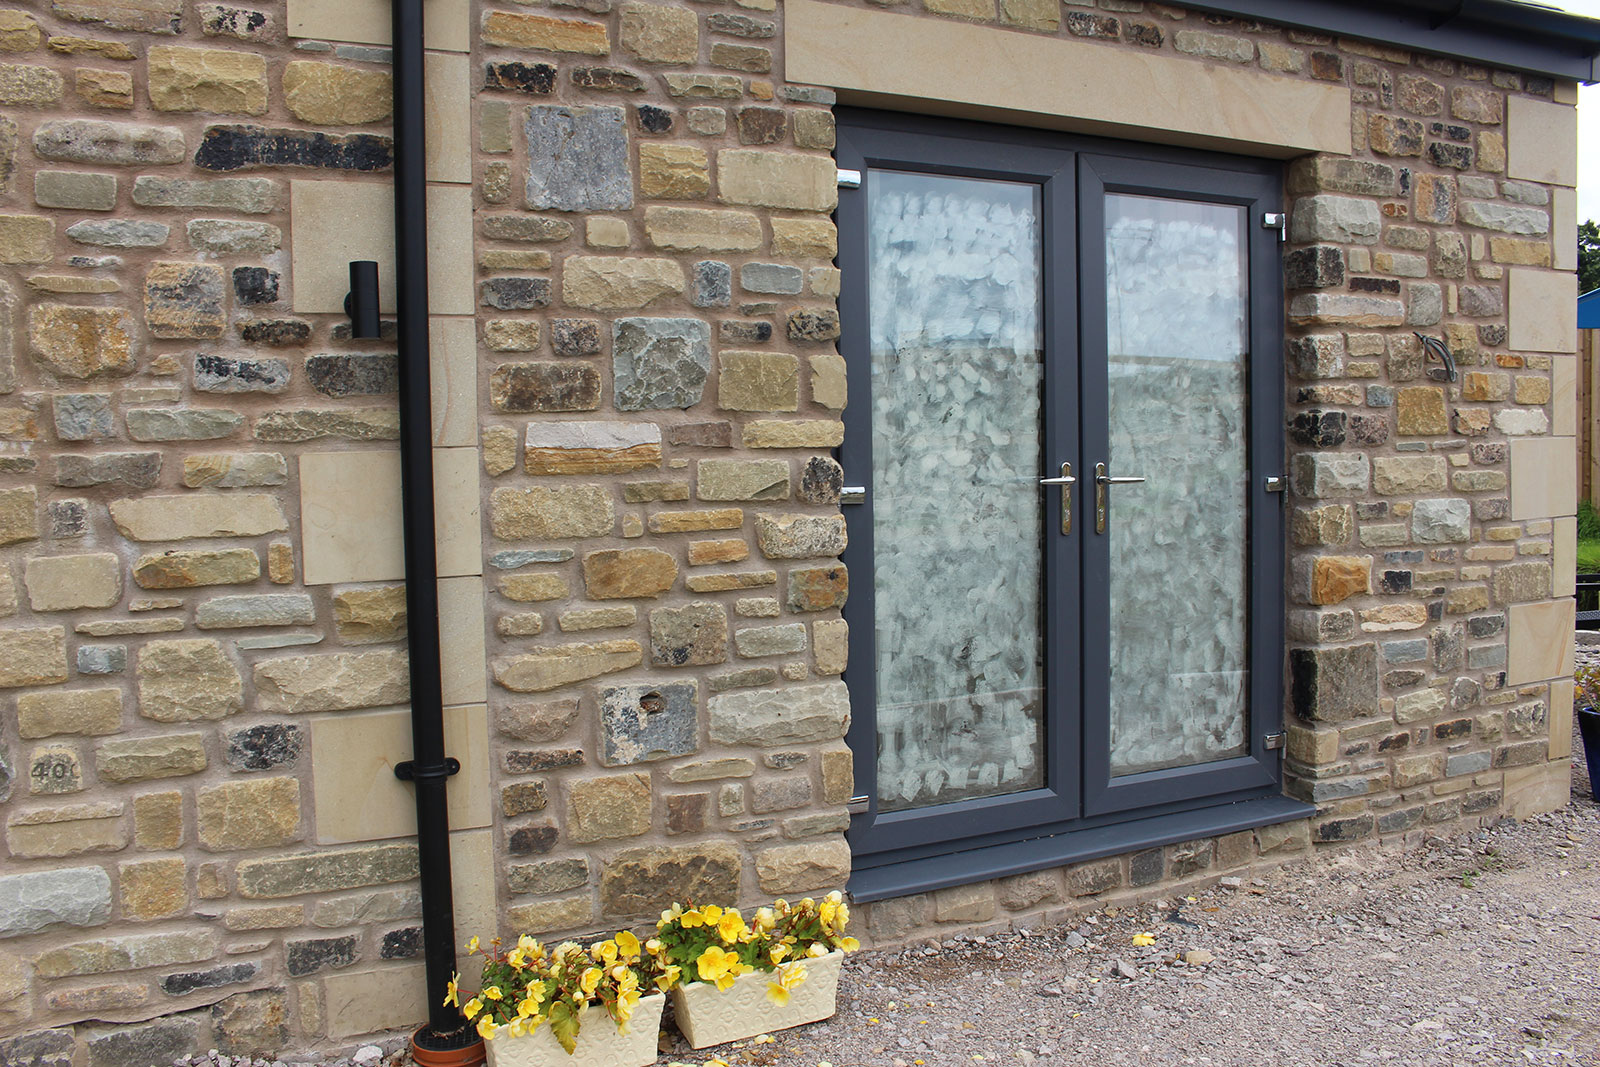 Image of yorkstone reclaimed walling. https://stoneuk.com/products/reclaimed-walling/